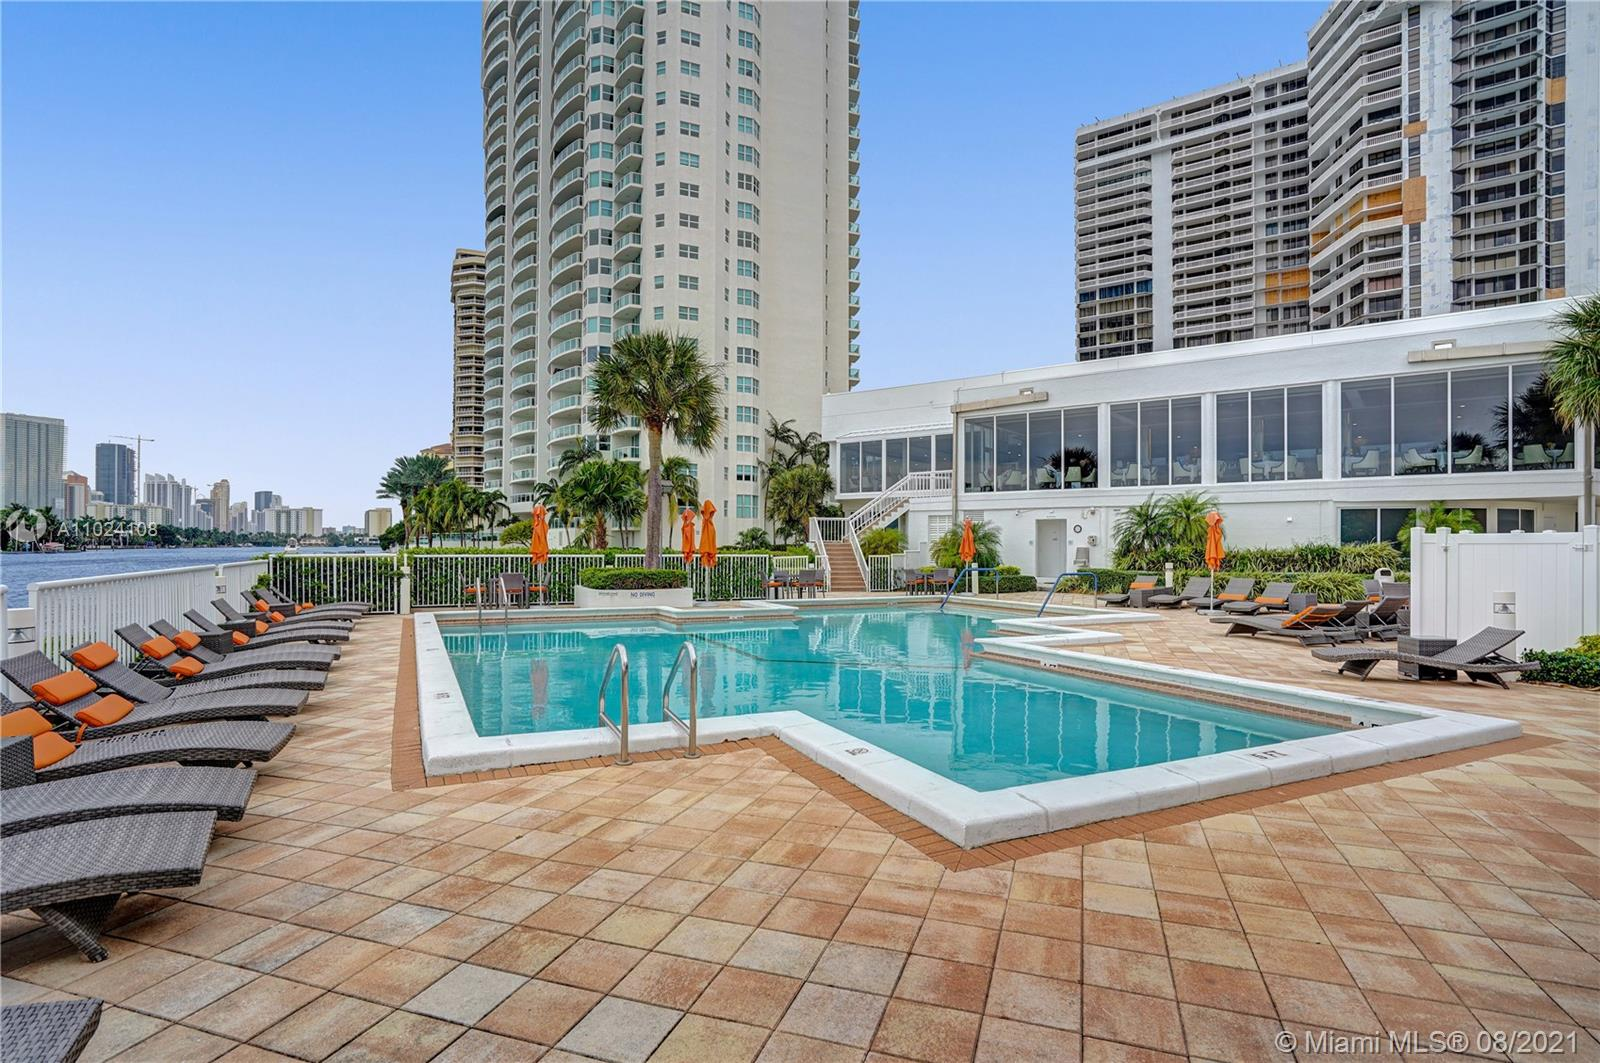 Photo of 20281 Country Club Dr #2407, Aventura, Florida, 33180 - Aqua classes every morning.